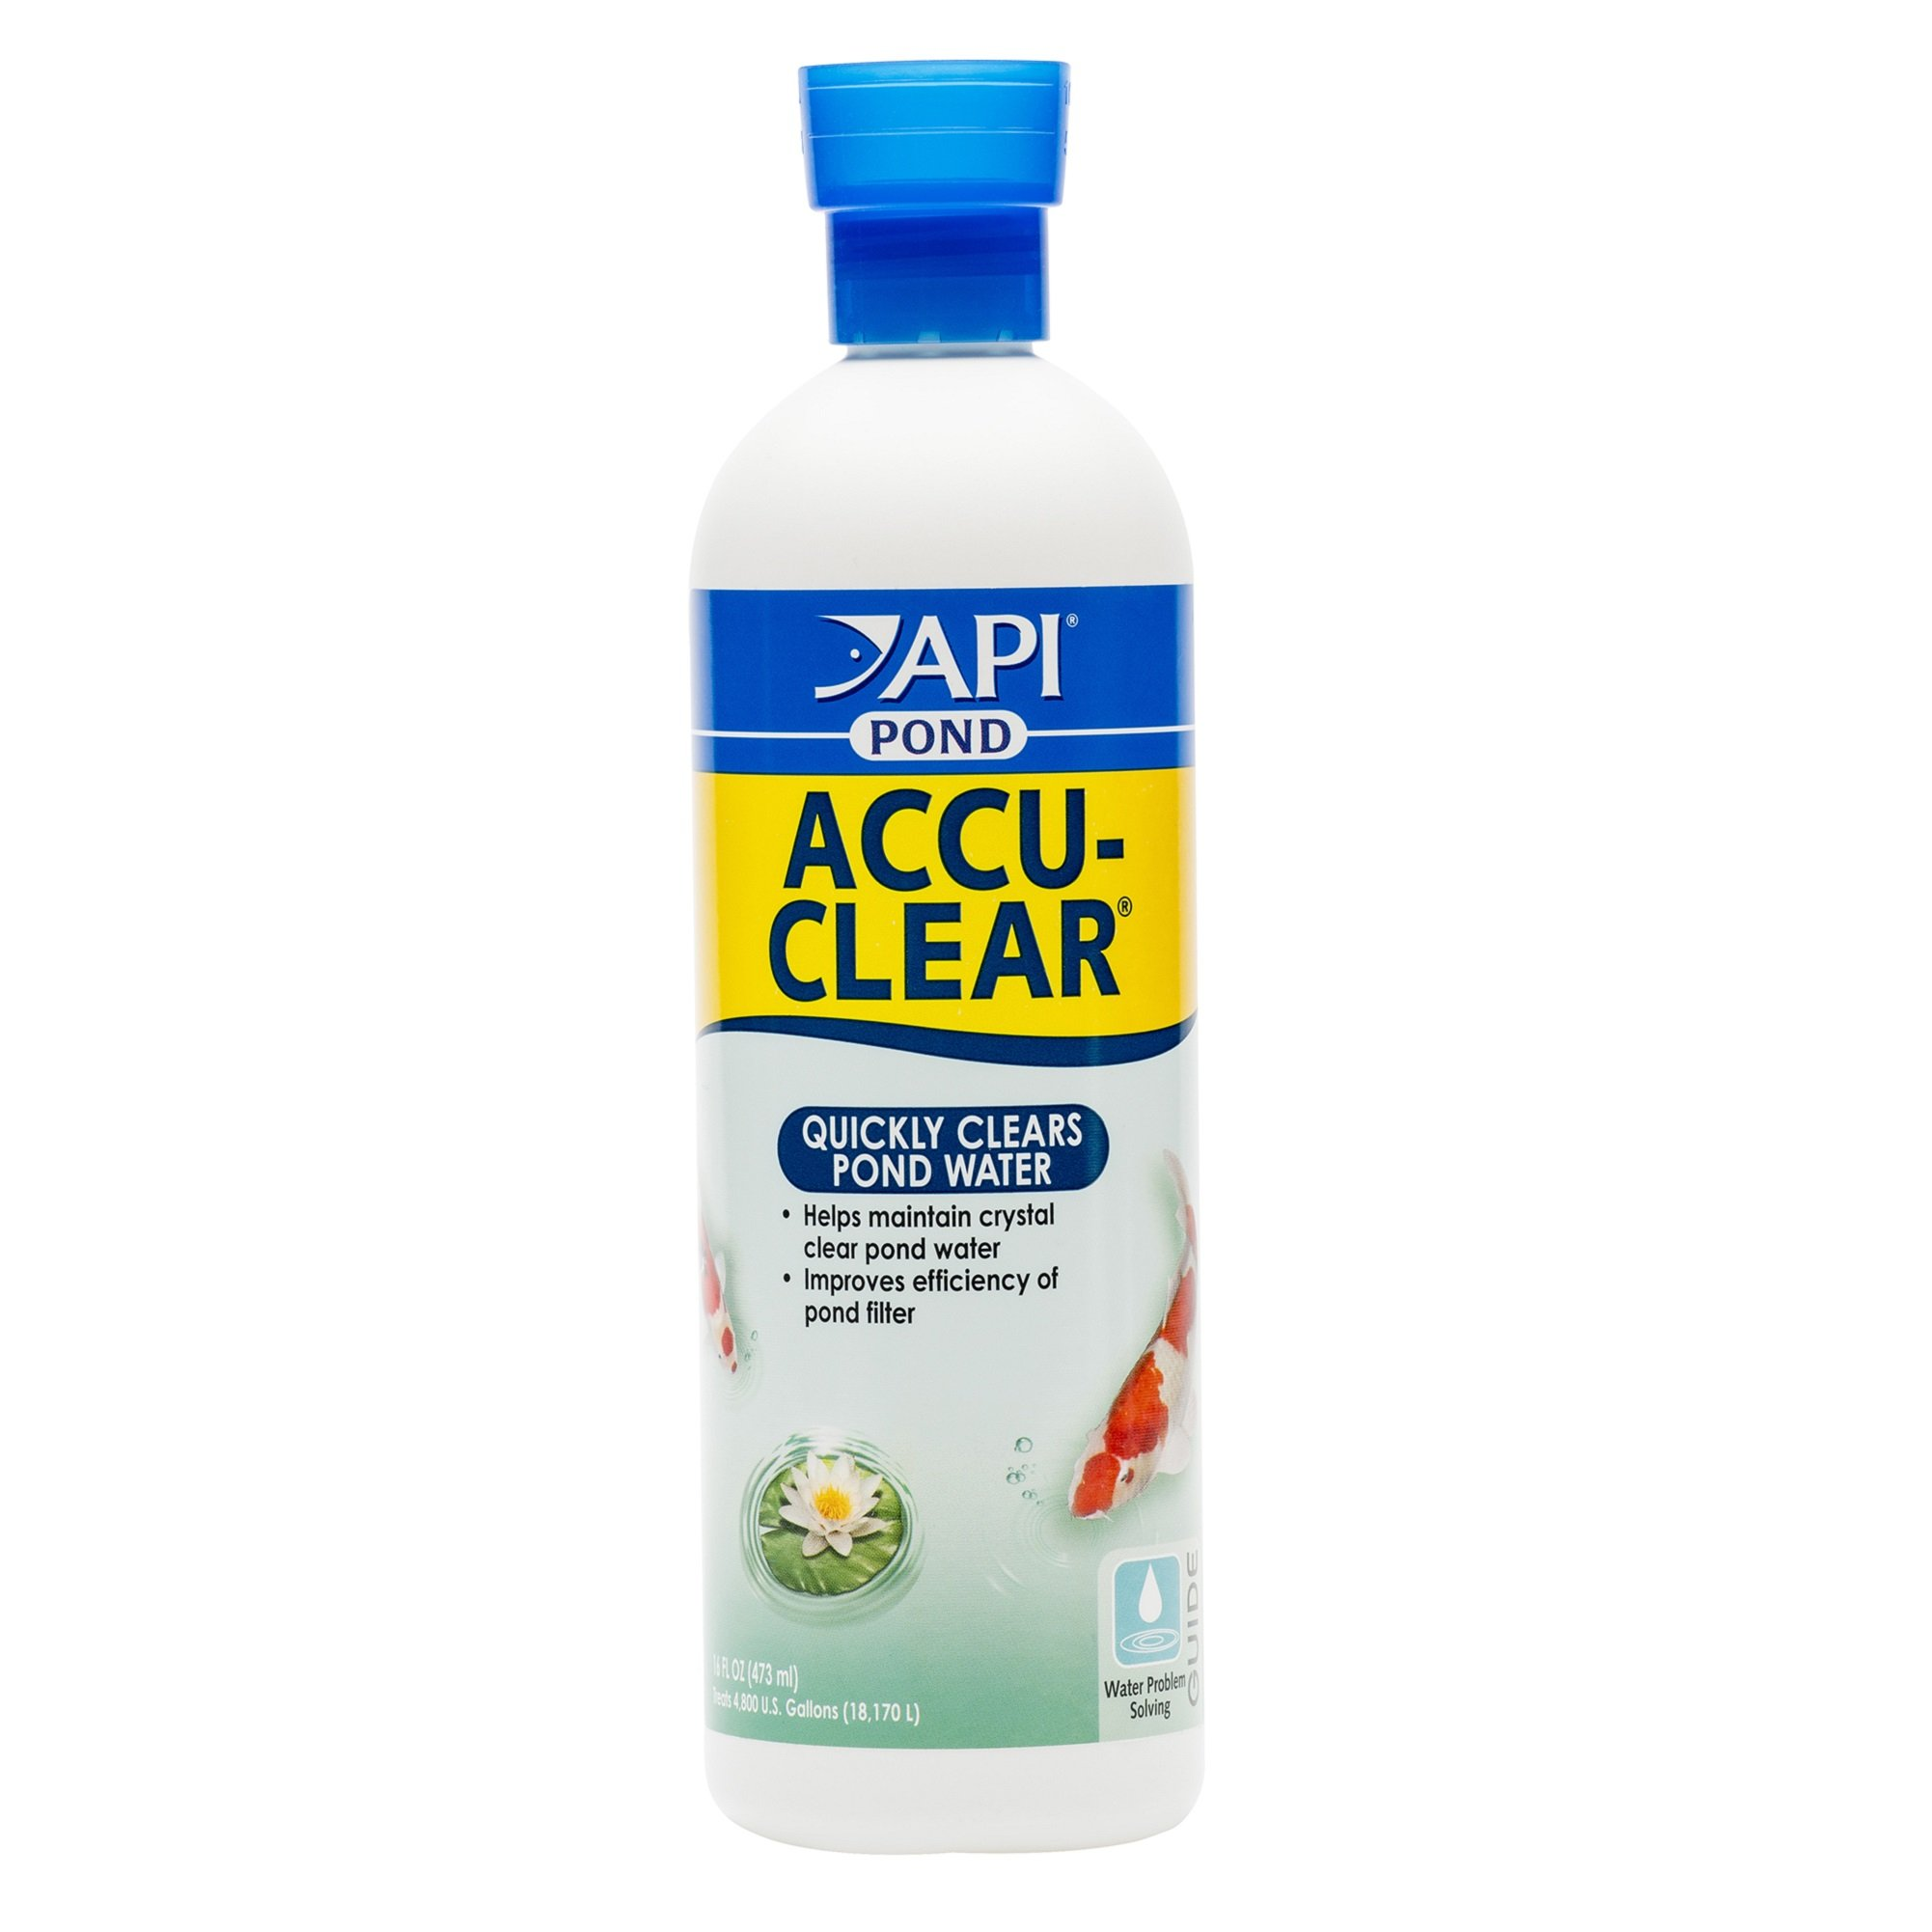 API POND ACCU-CLEAR Pond Water Clarifier 16-Ounce Bottle by API (Image #1)